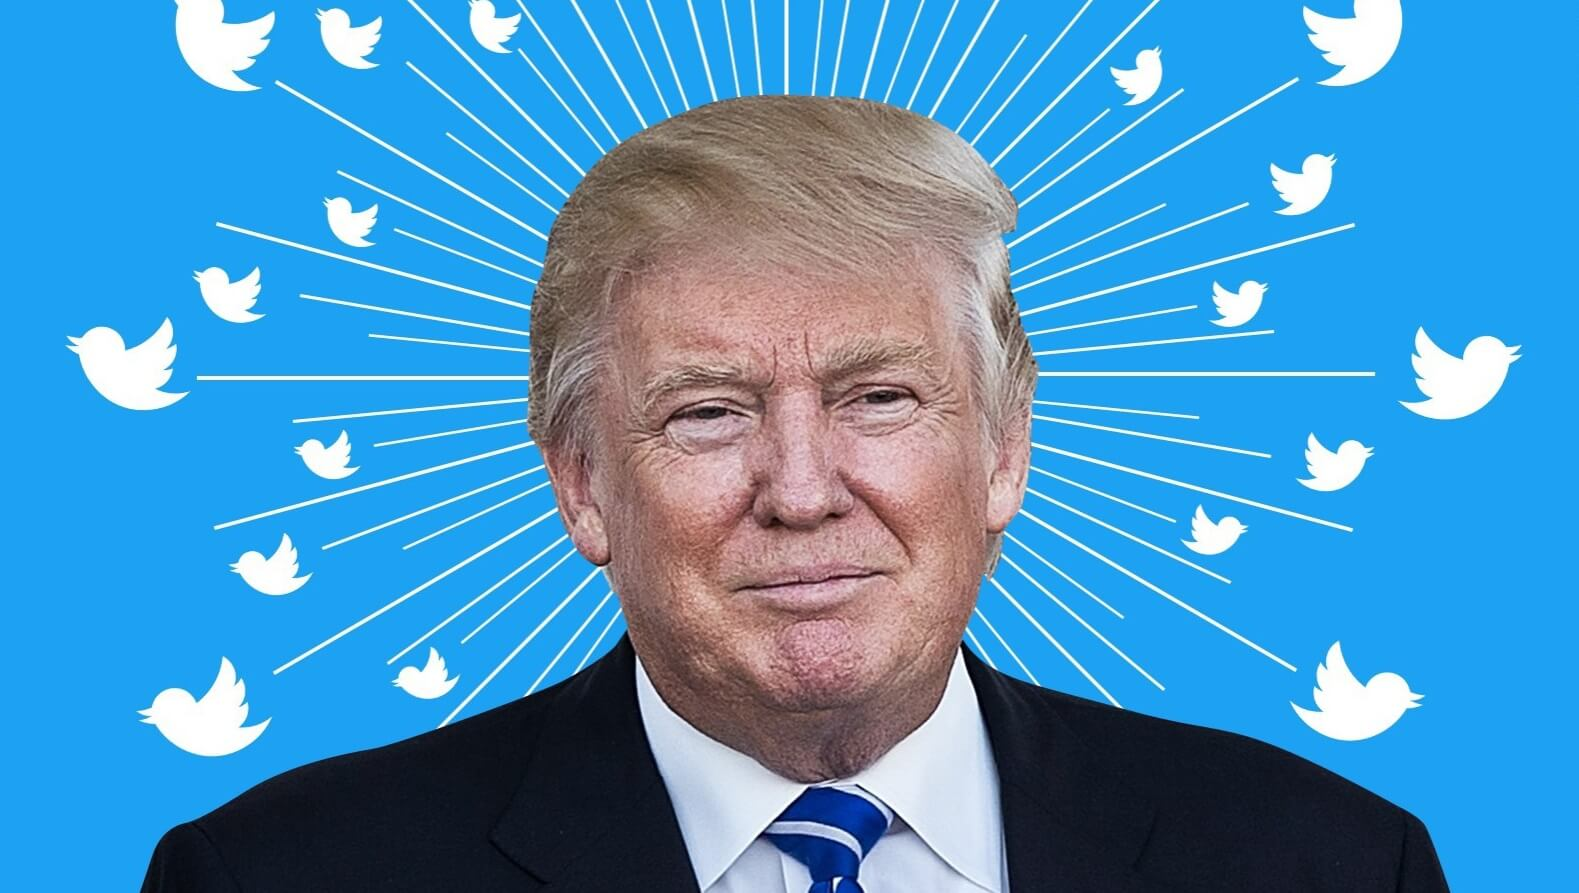 Donald Trump Unblocks Some More Twitter Haters - Hit & Run